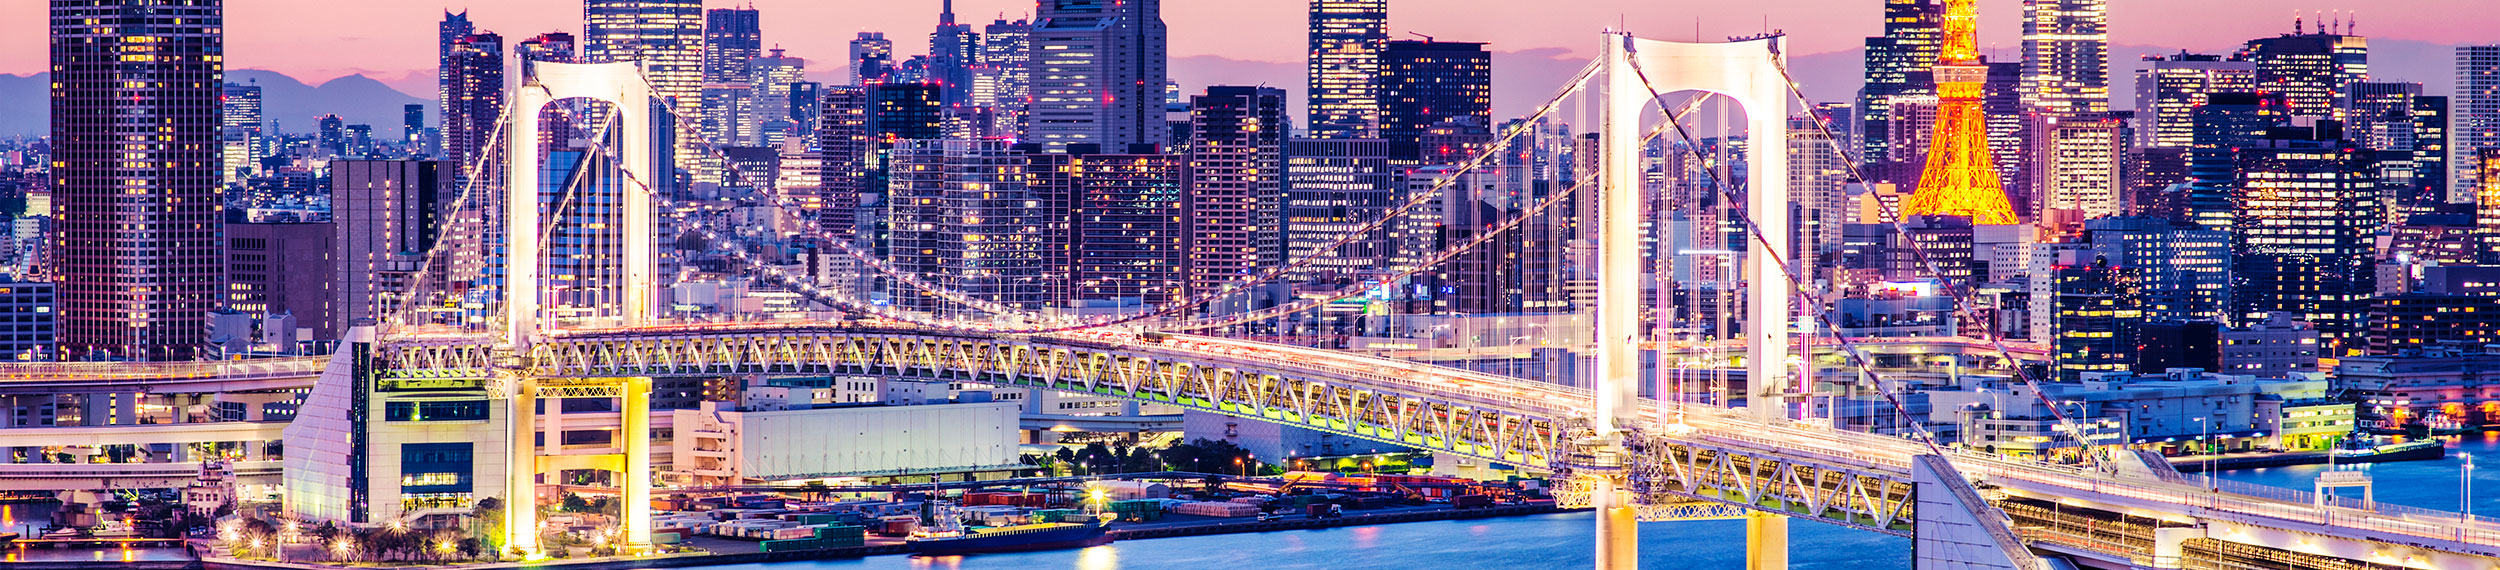 Aerial view of Tokyo cityscape lit up at night with Tokyo Tower and Rainbow Bridge in the background in Tokyo, Japan.